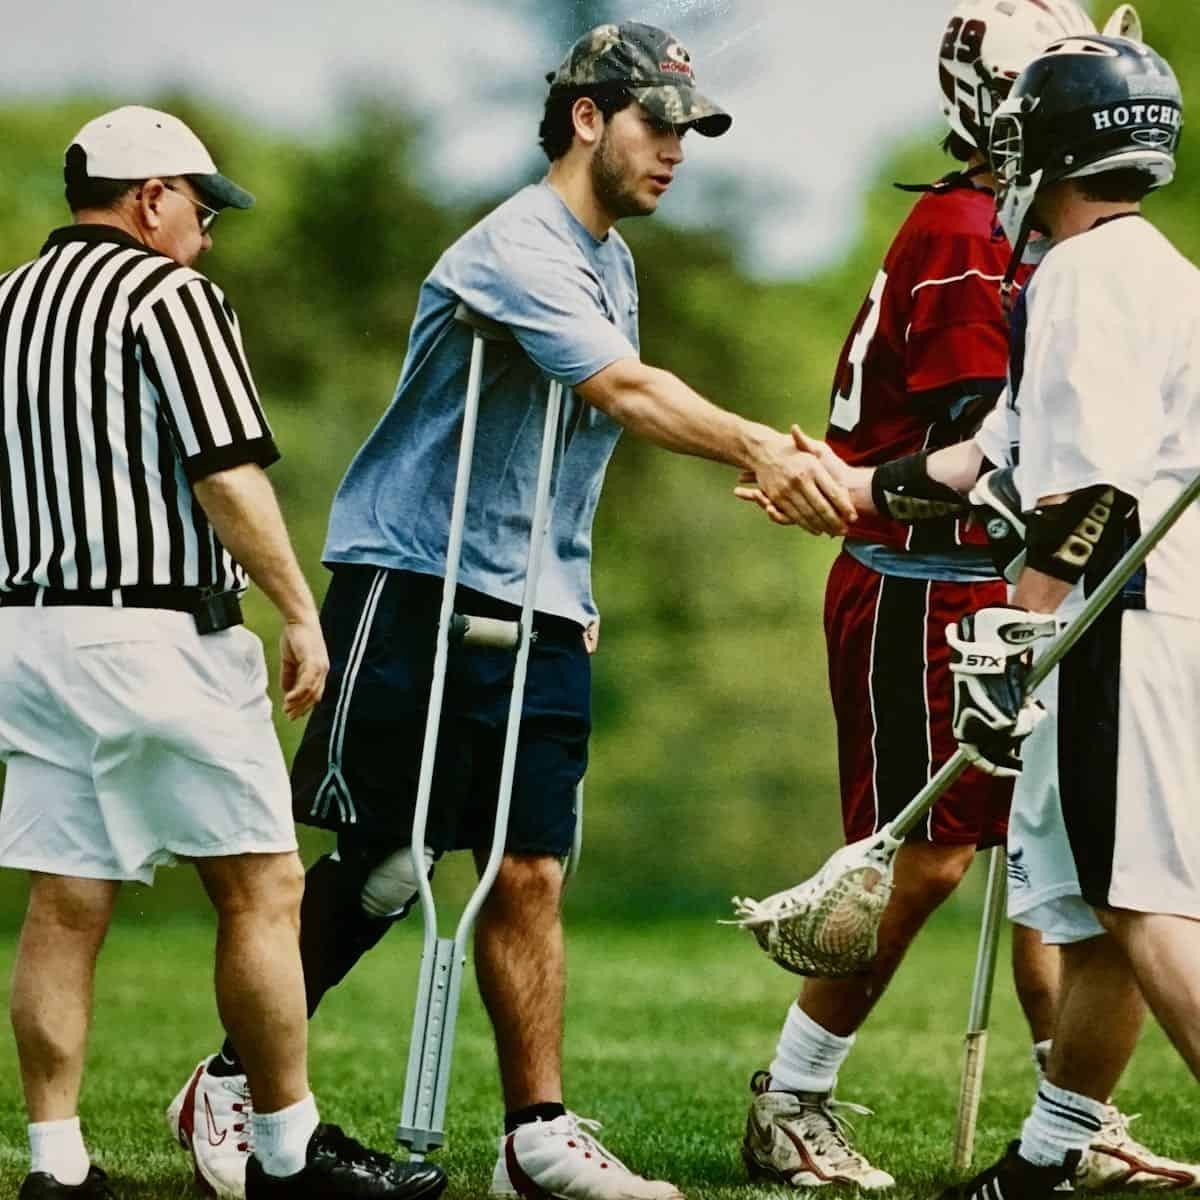 my son, on crutches, shaking hands on lacrosse field